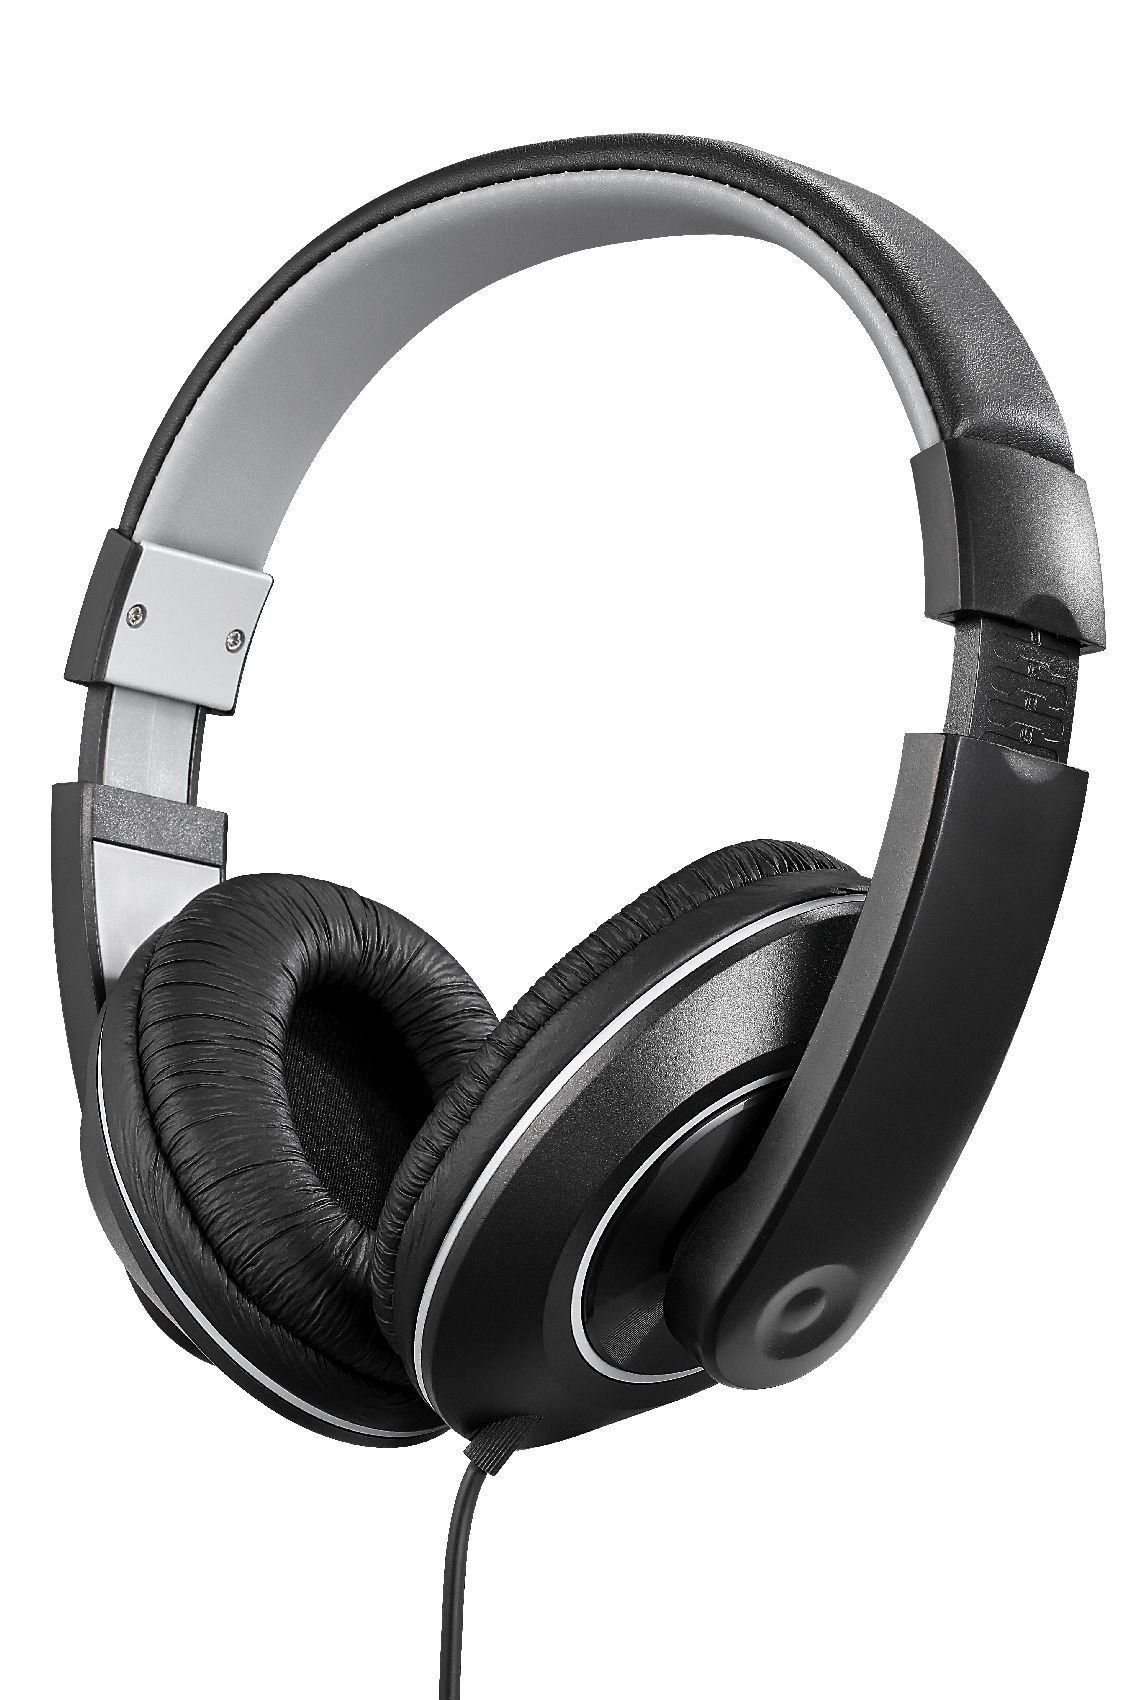 Amplify Groove Headphones black&grey - AM2006/BKG